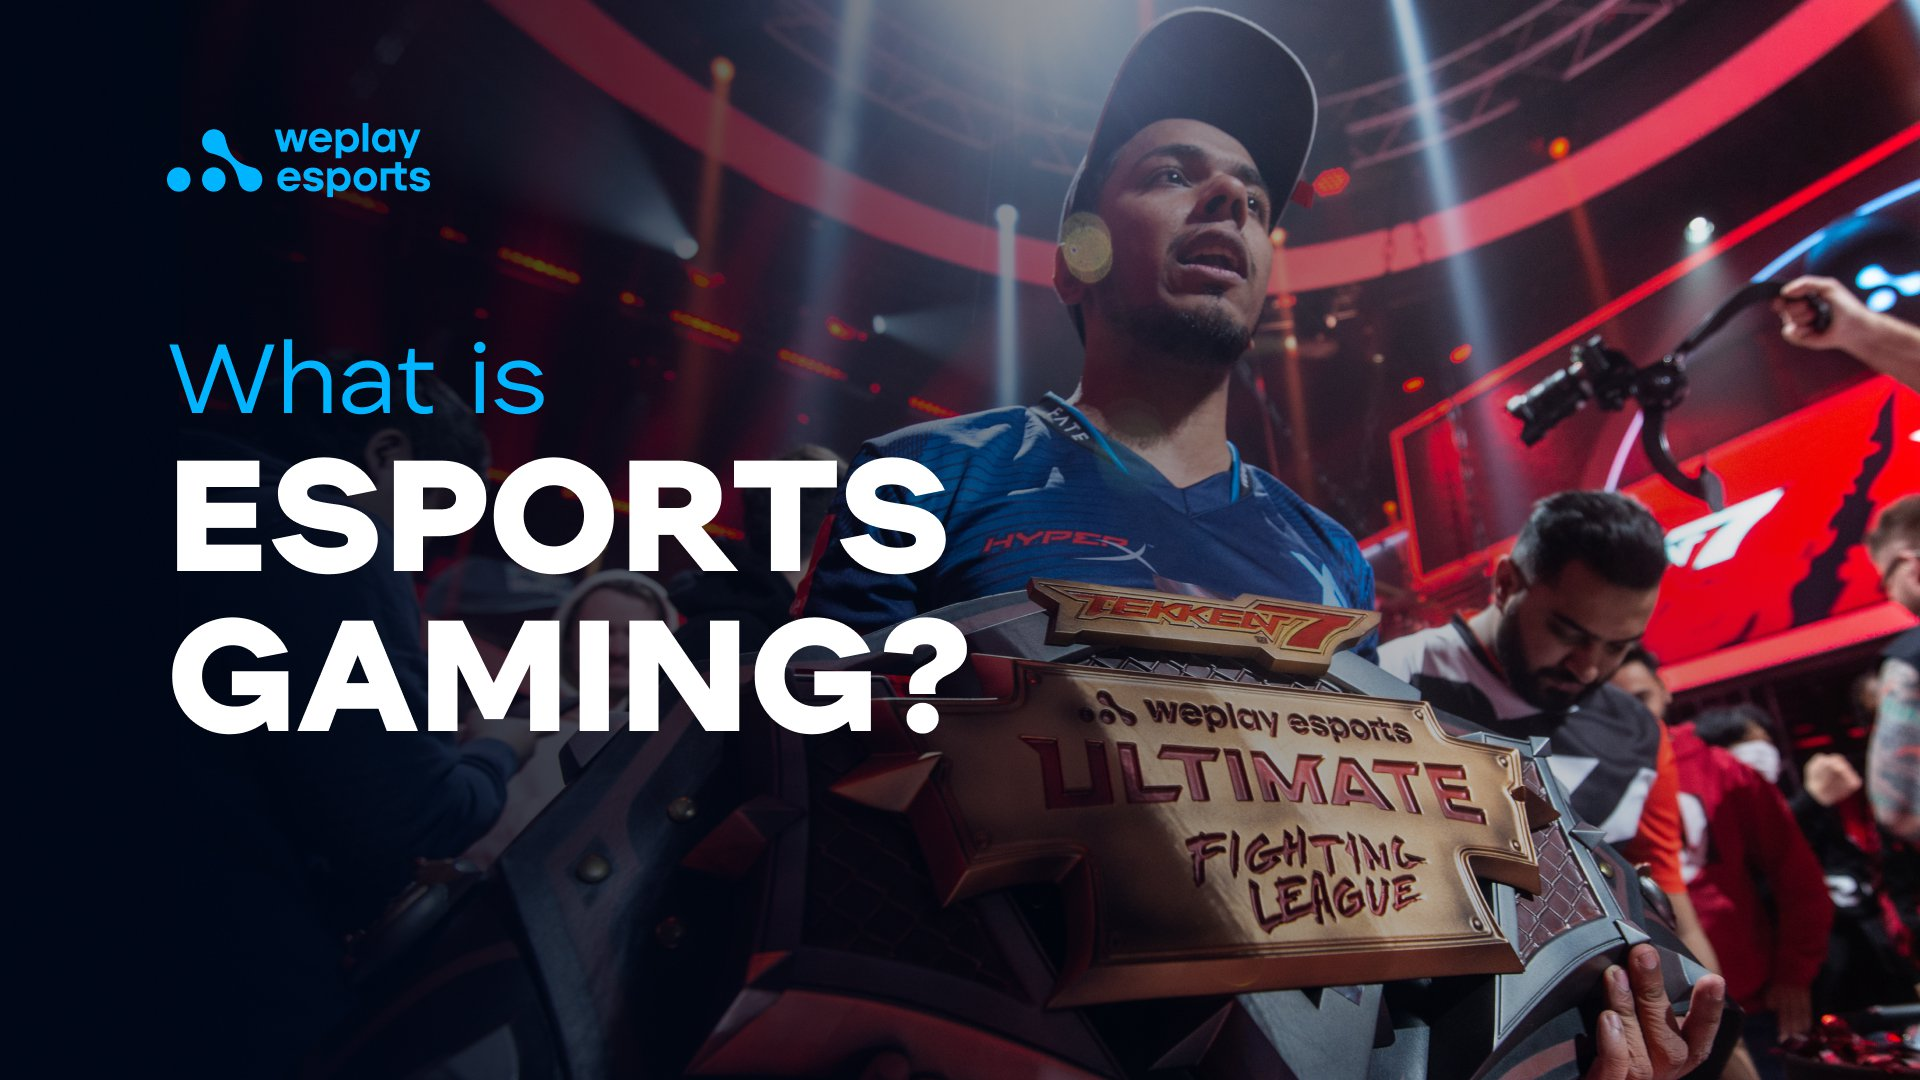 What is esports gaming?